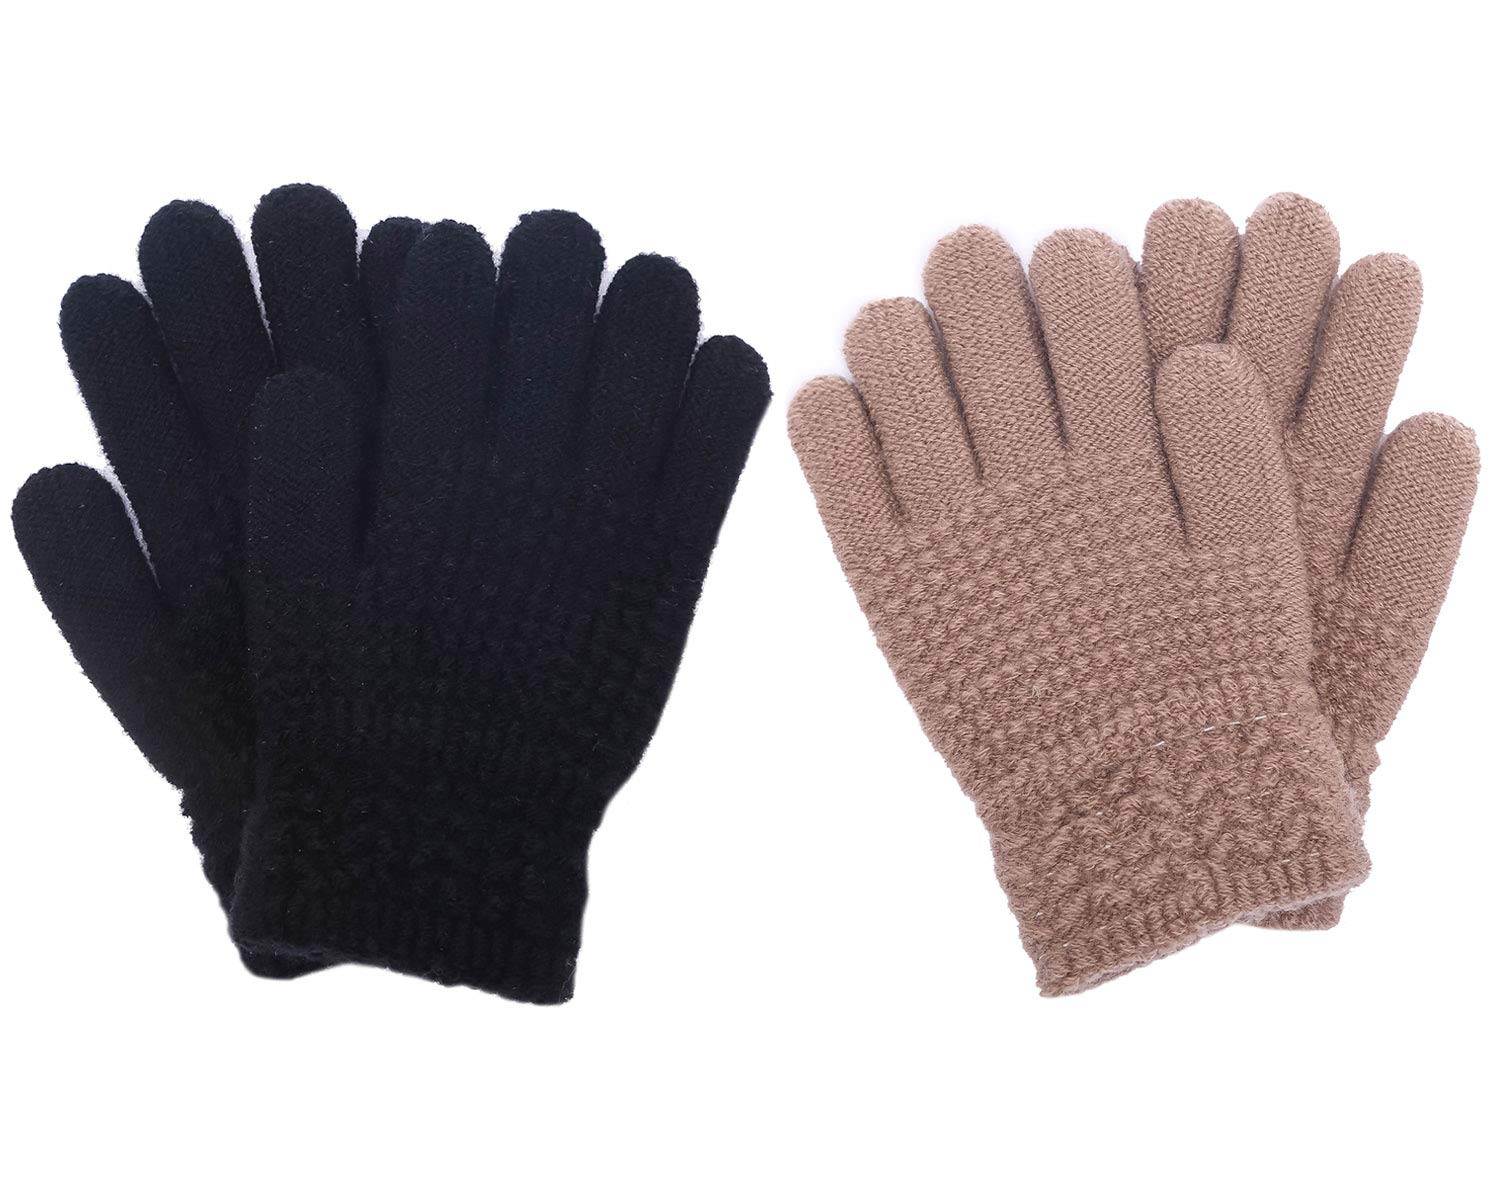 CEAJOO Kids Gloves Winter Knit Cashmere Stretchy Warm